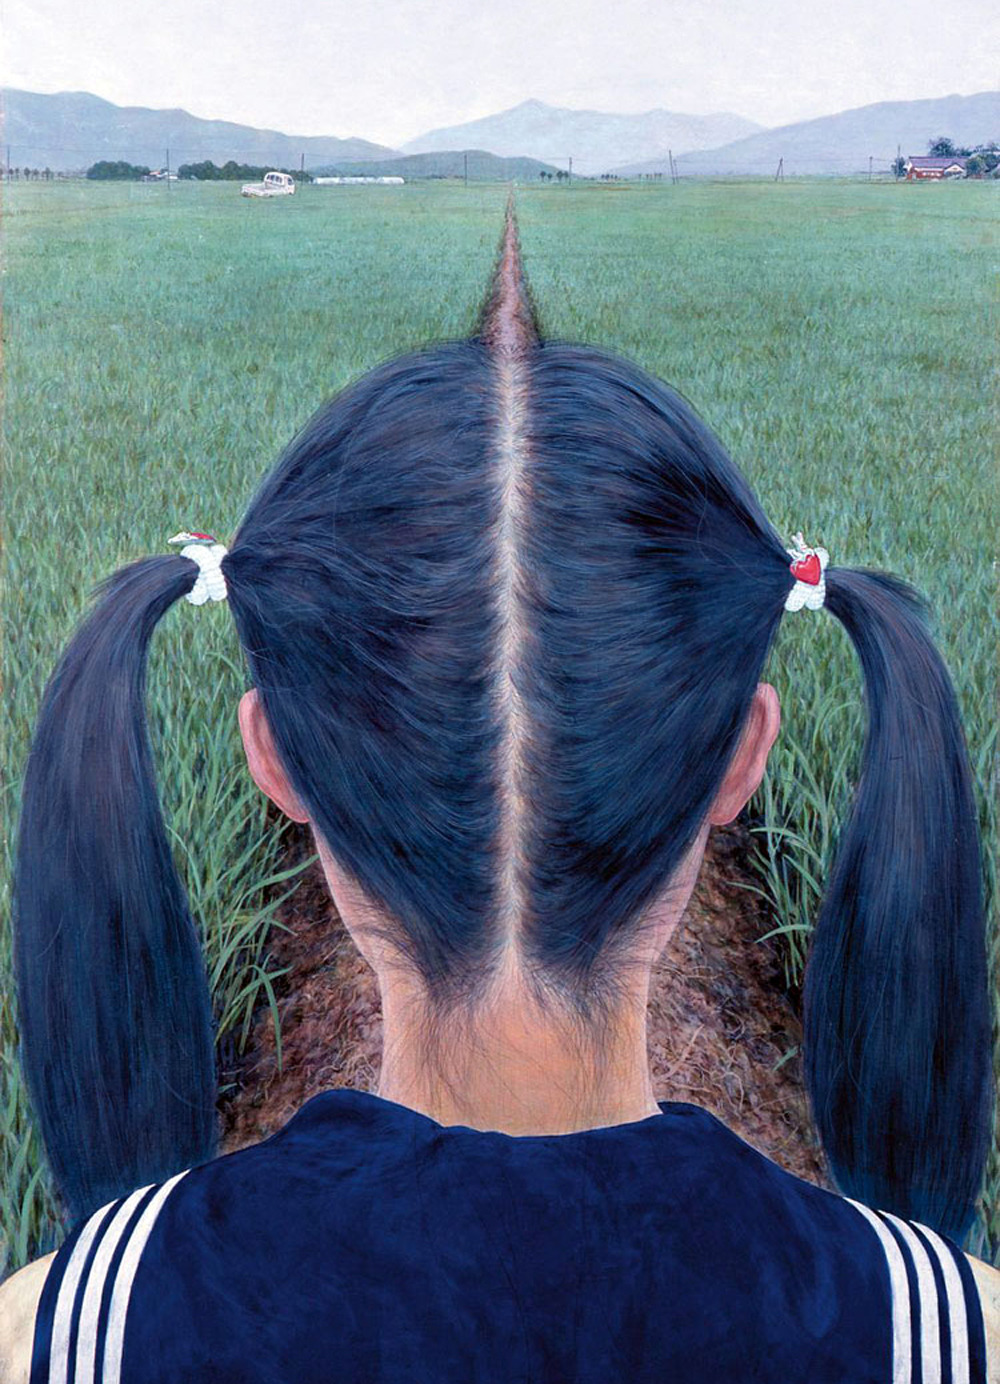 laughingsquid:  A Path Between Rice Fields, A Photorealistic Painting by Makoto Aida